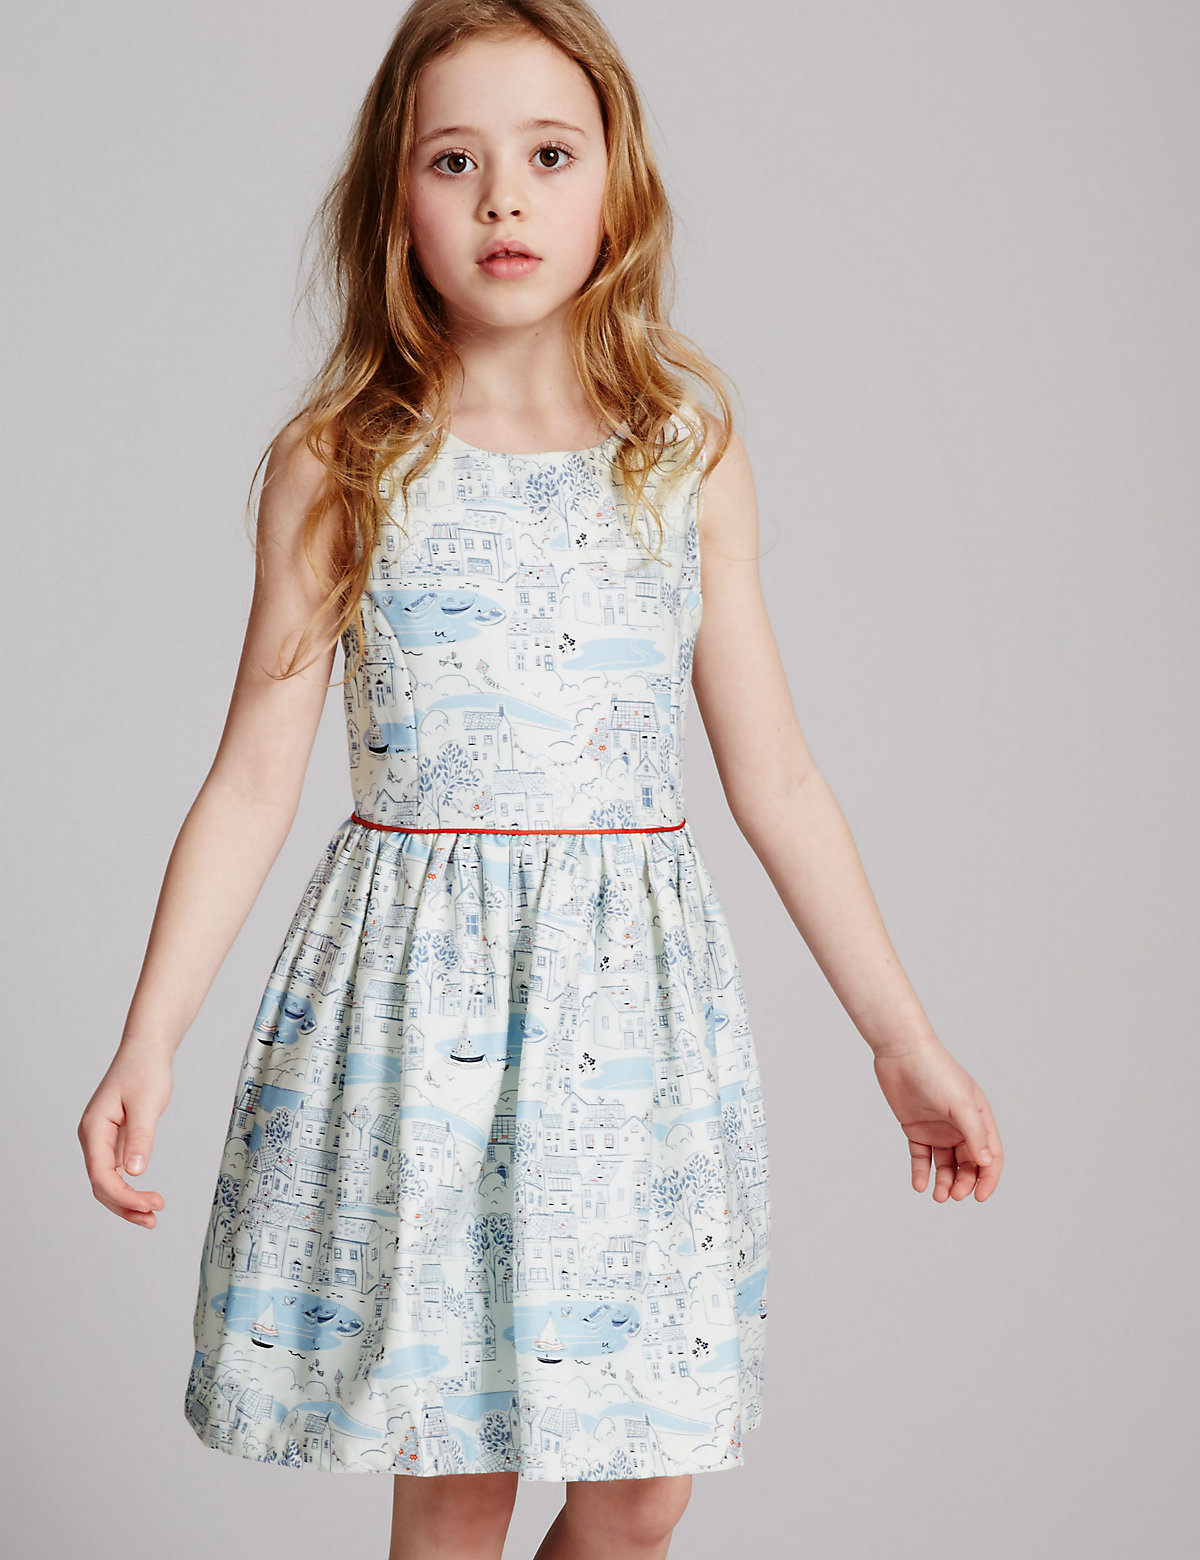 Autograph All Over Print Dress (3-14 Years)